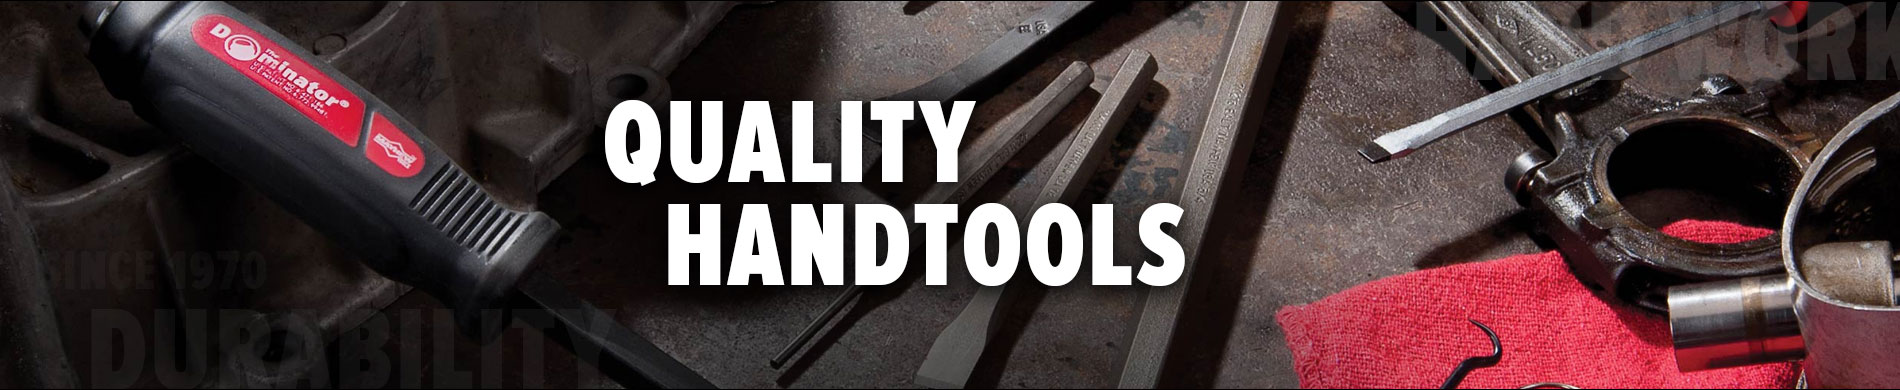 Home Page | Toolware Sales Auckland: Quality trade tools